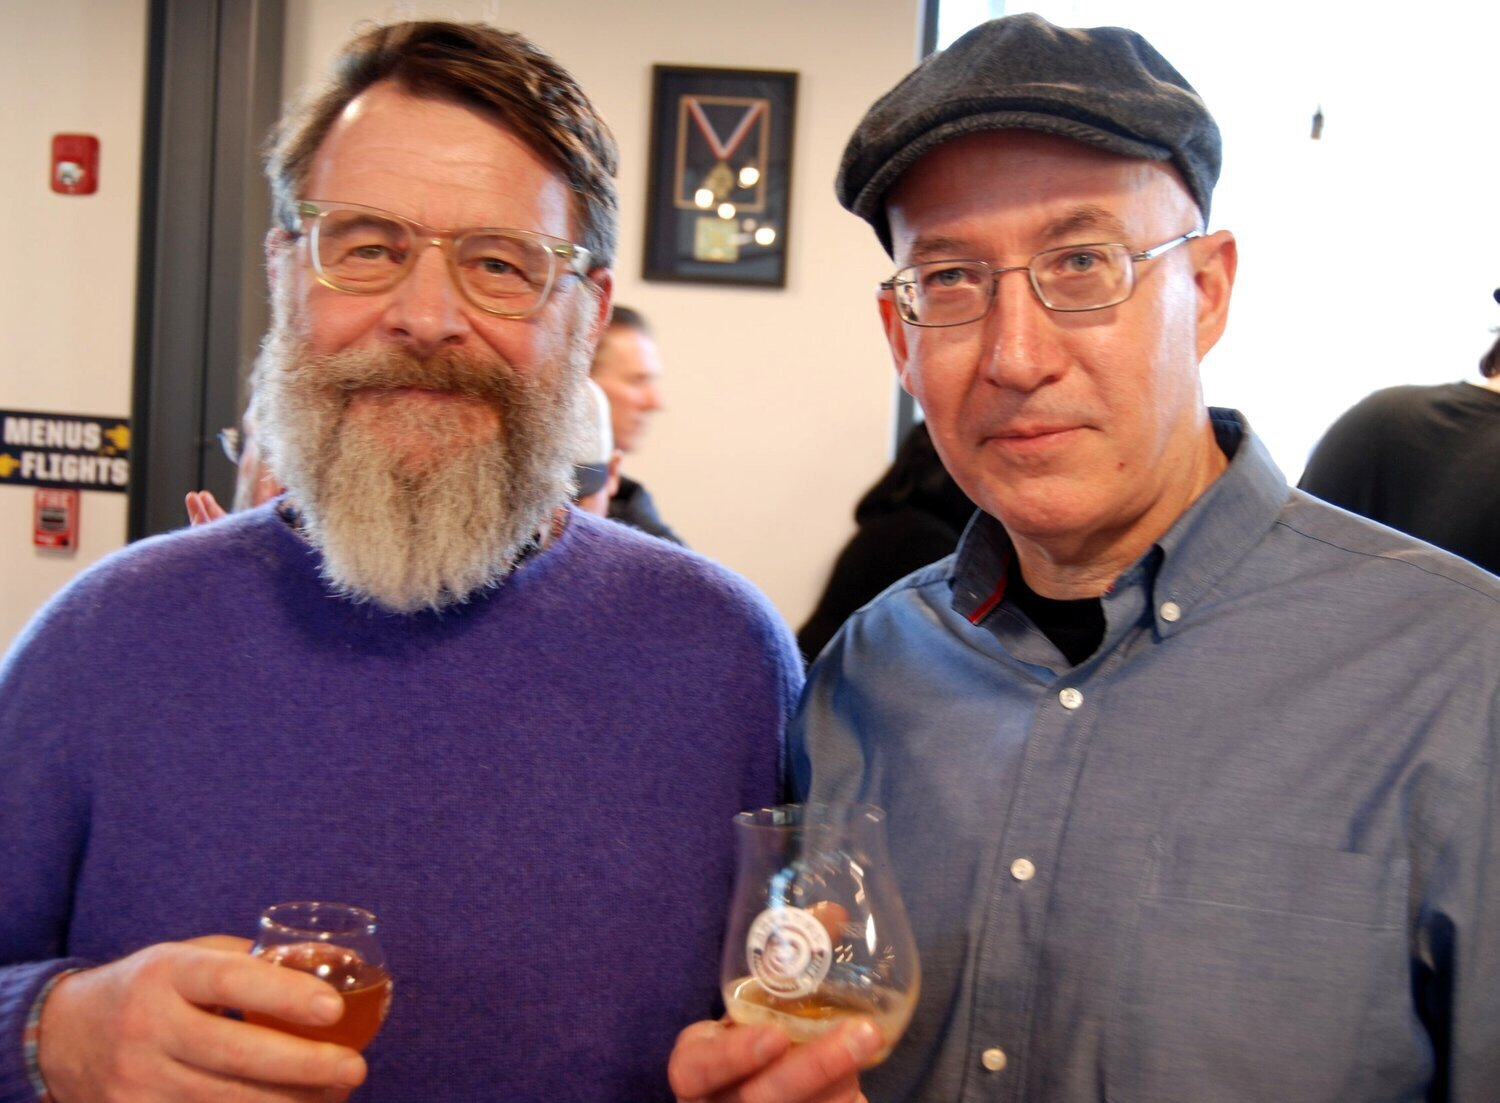 Cheers to CT Beers! - Dr. James Shepherd owner of Smokedown Farm (left) pictured with brewmaster Phil Markowski of Two Roads Brewing Company at the Area Two private grand opening.